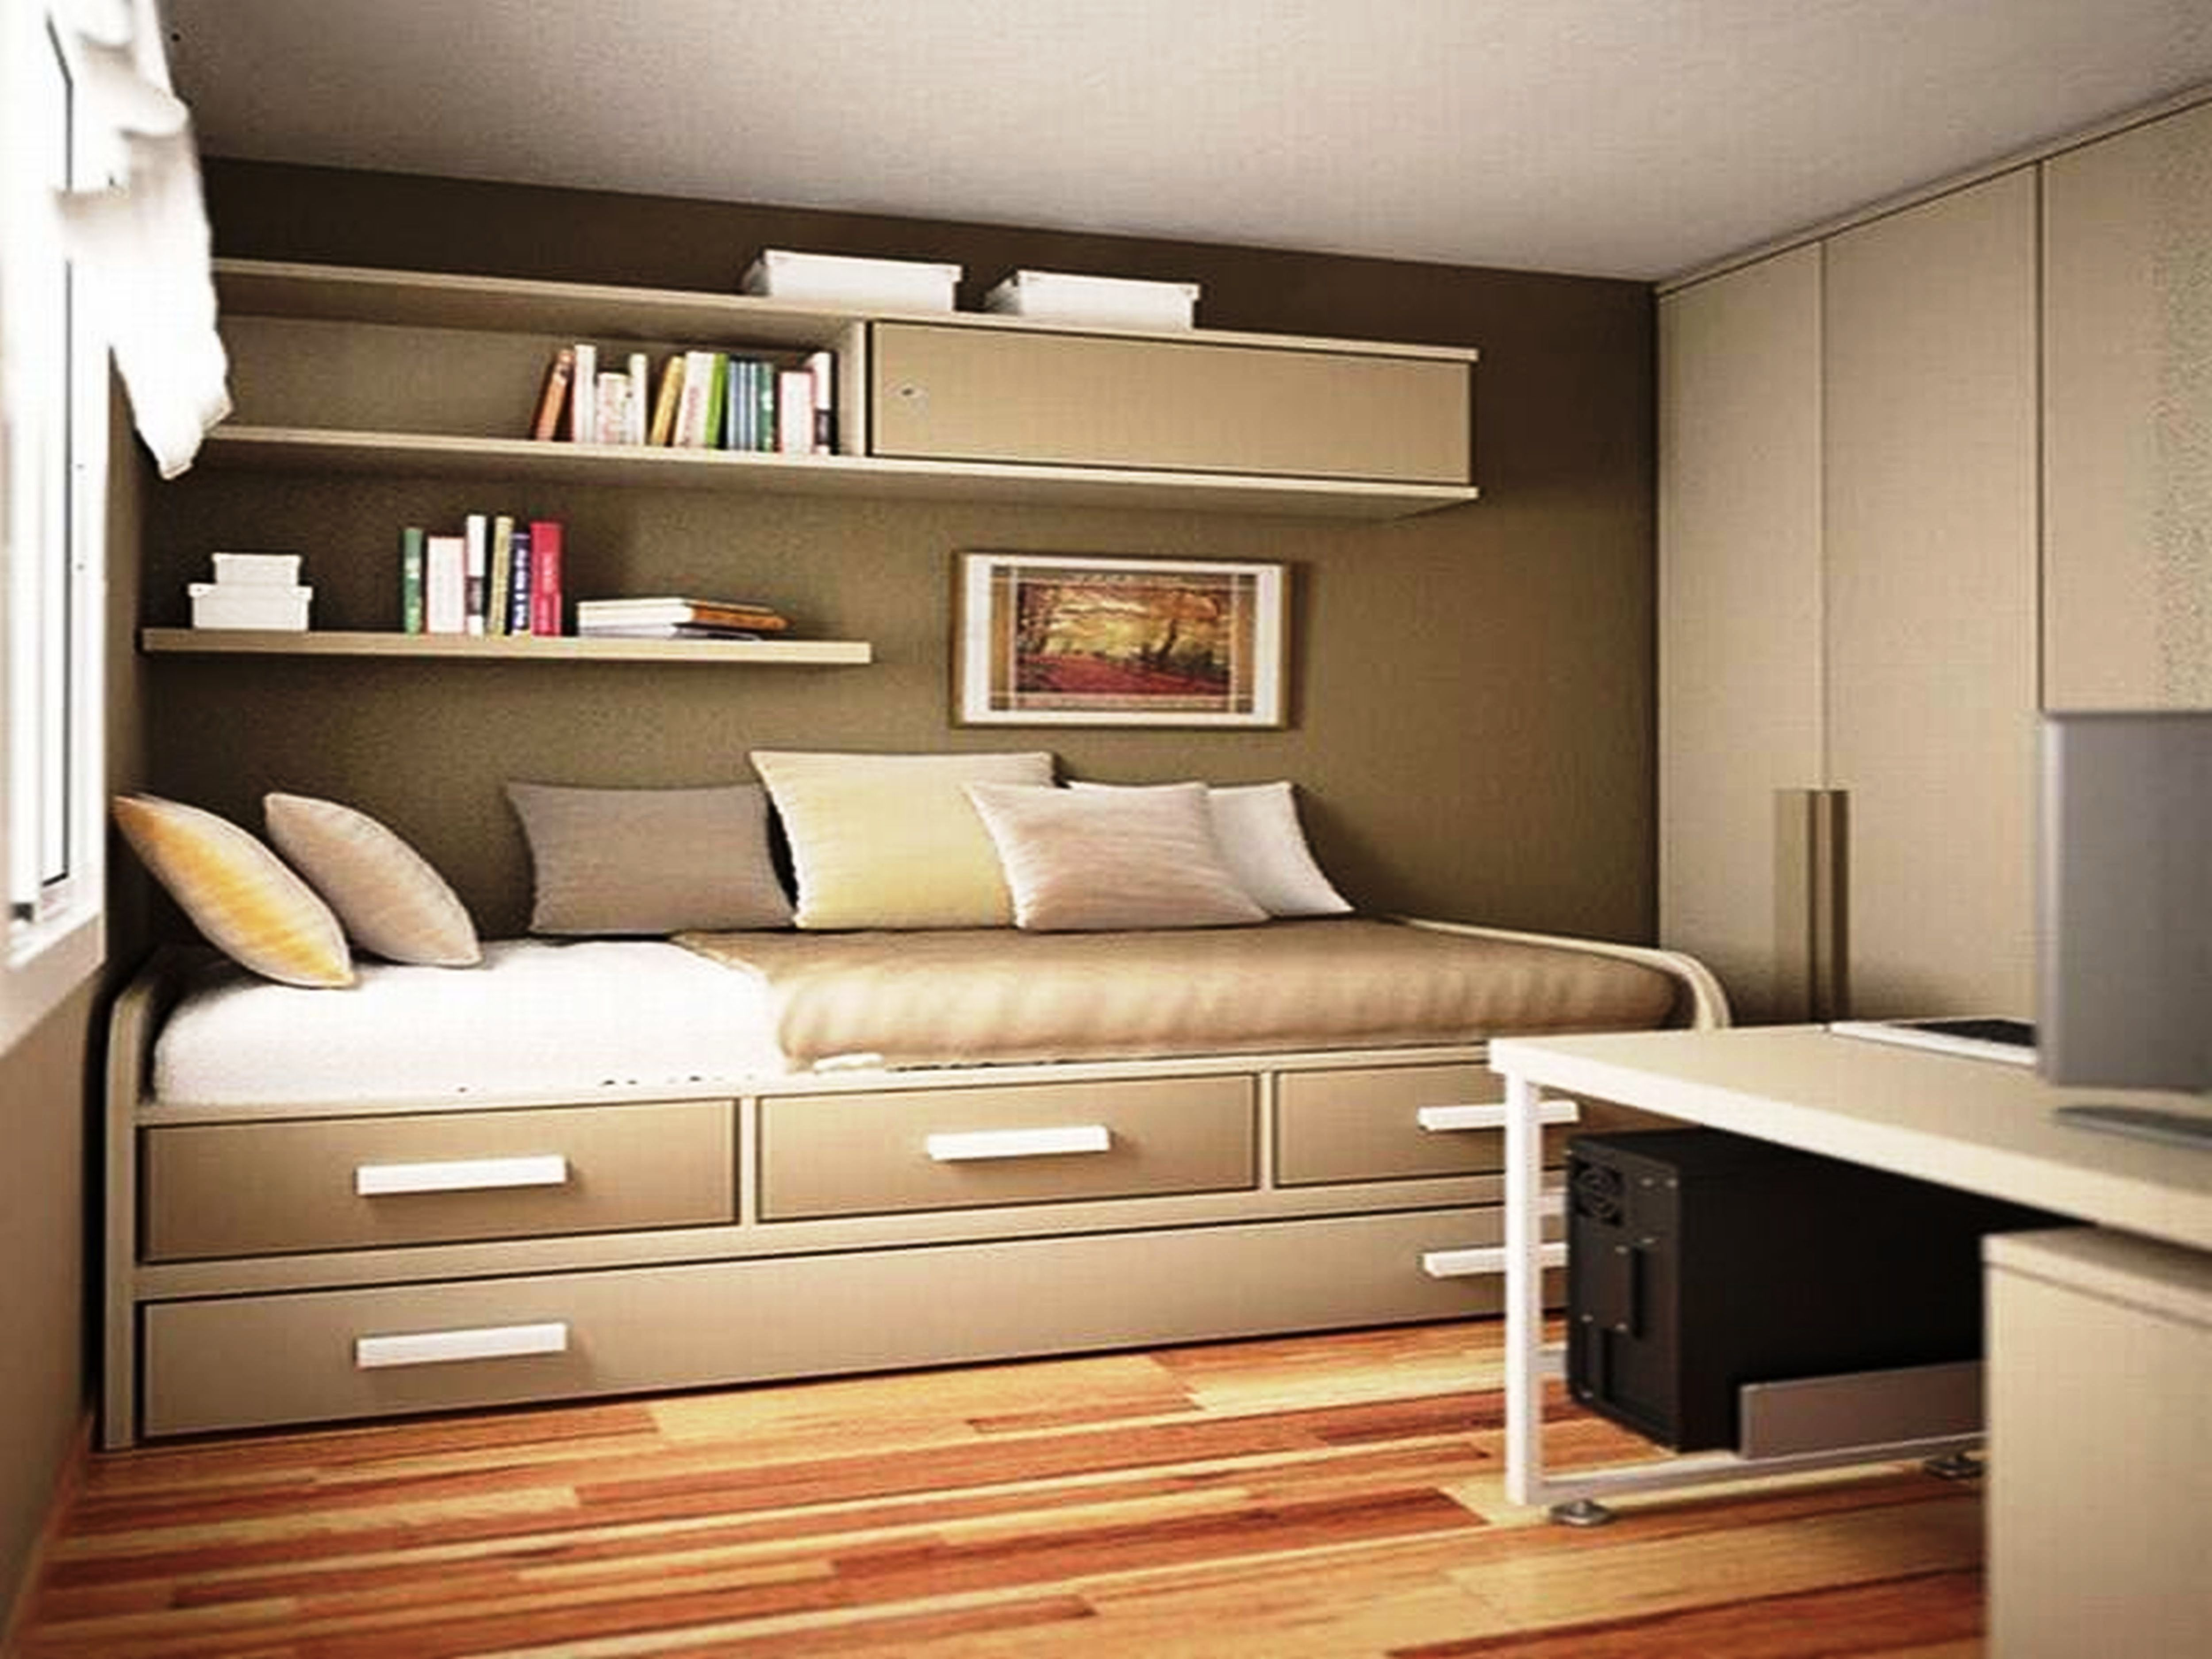 Ikea bedroom furniture for small spaces  Hawk Haven